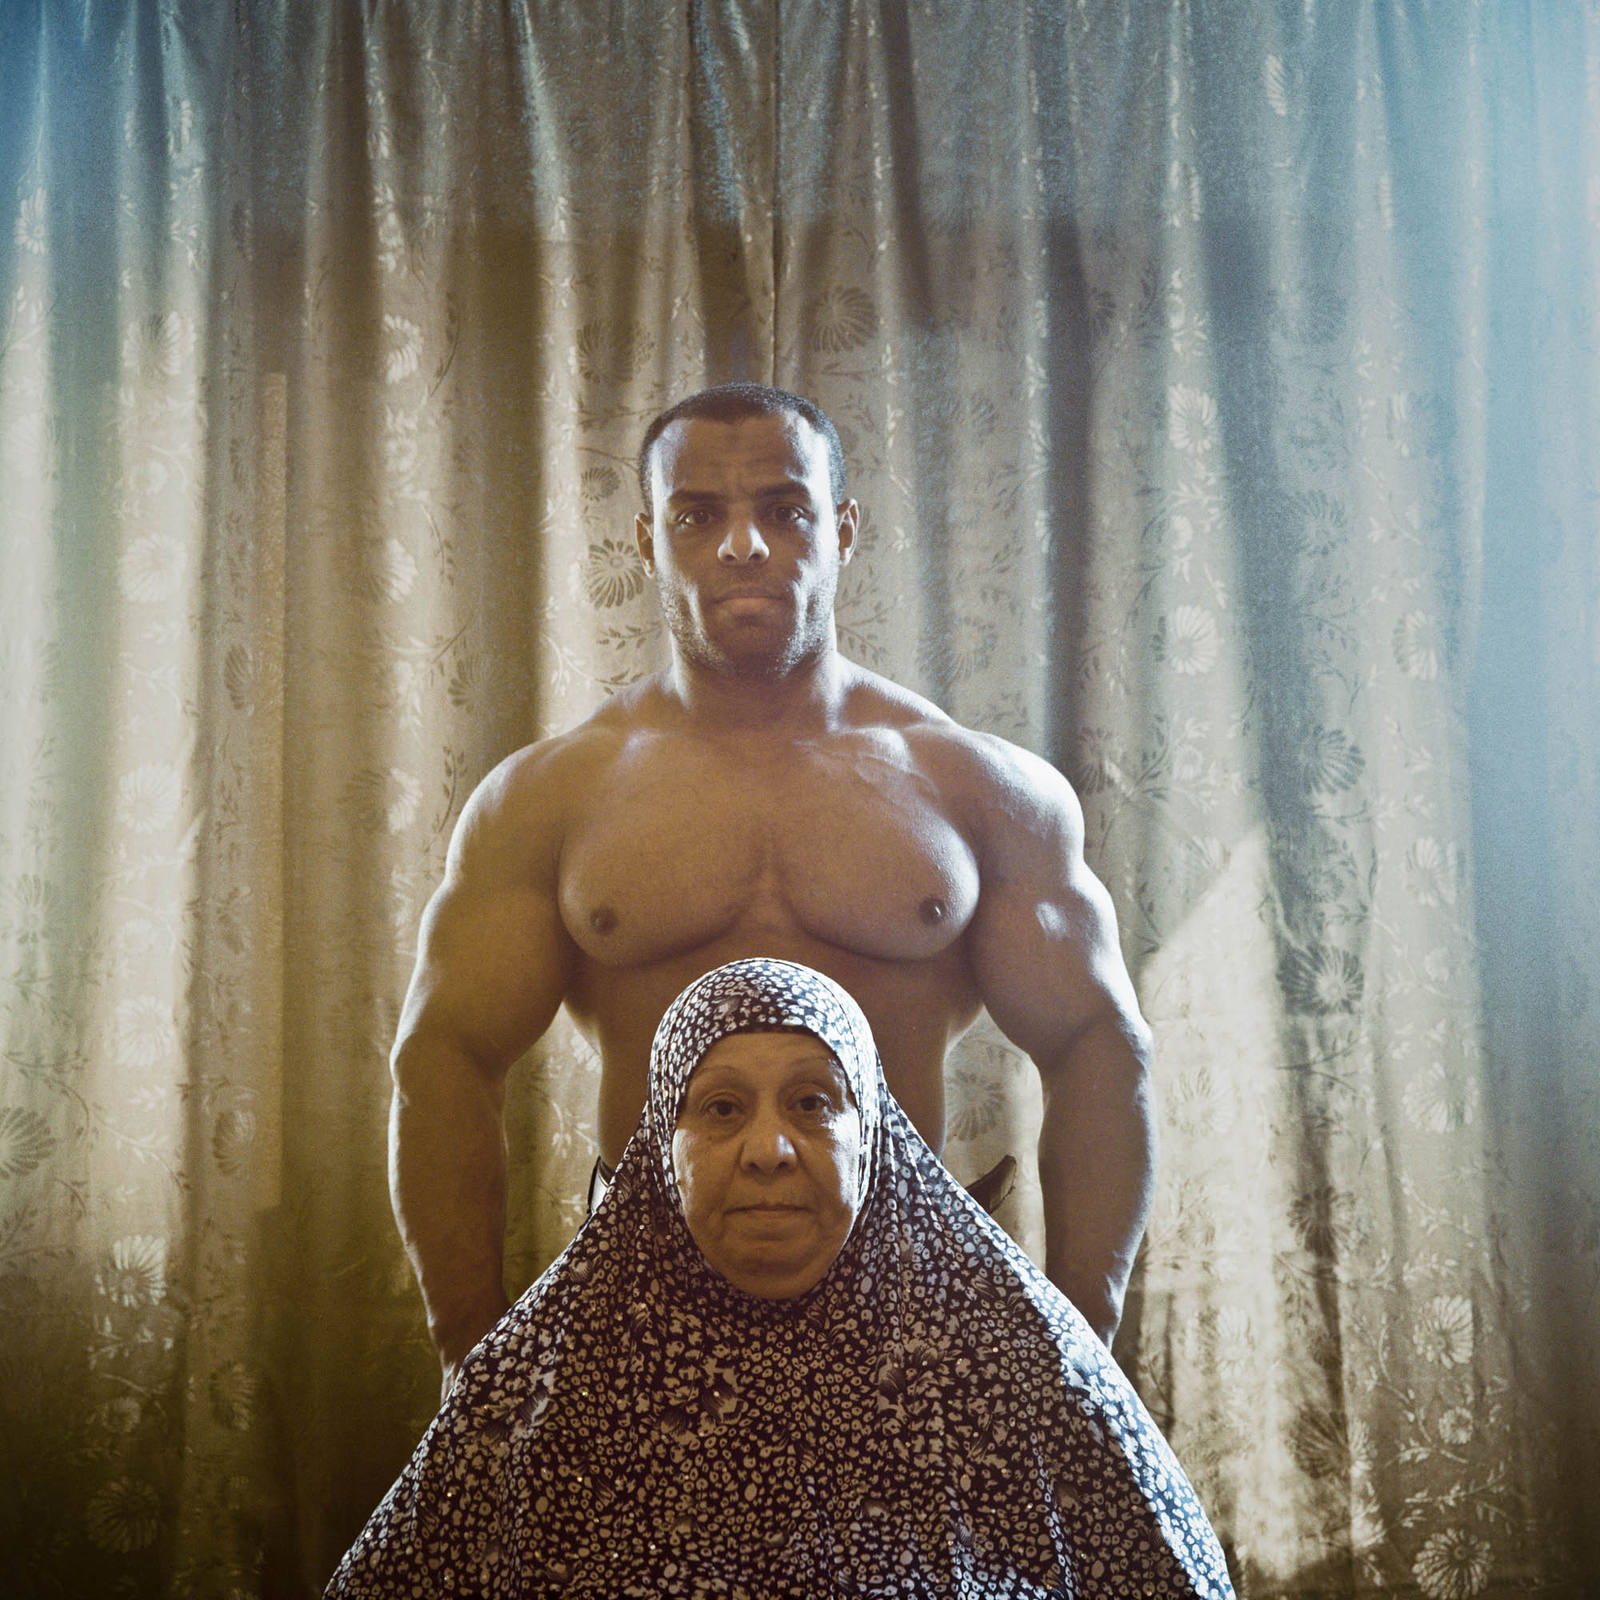 Oussam and his mother (from Mère et Fils) - Egypt, Alexandria, 2014 photograph by Denis Dailleux